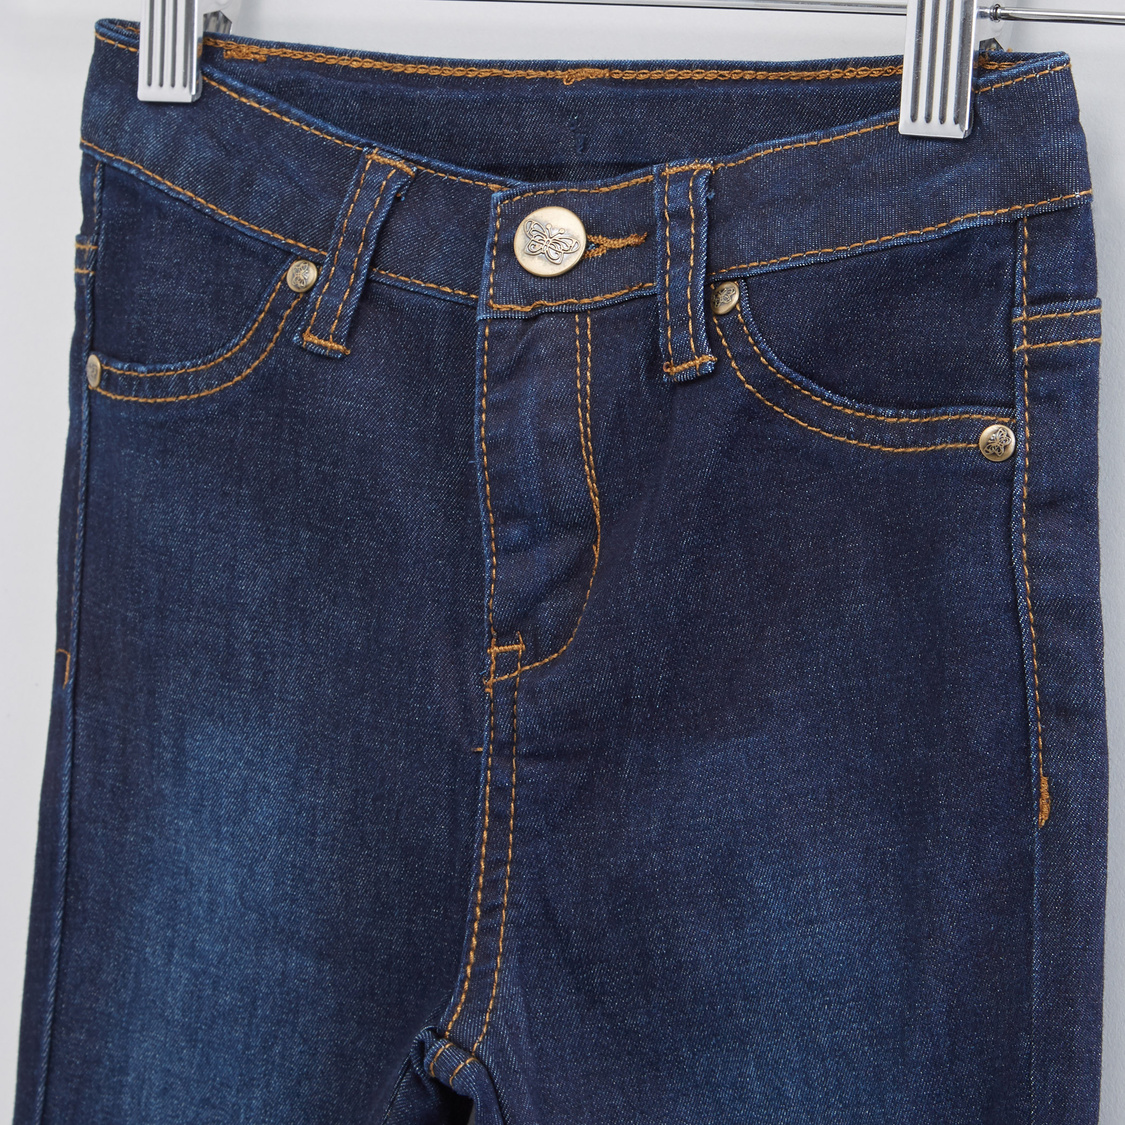 Full Length Jeans with Four Pockets